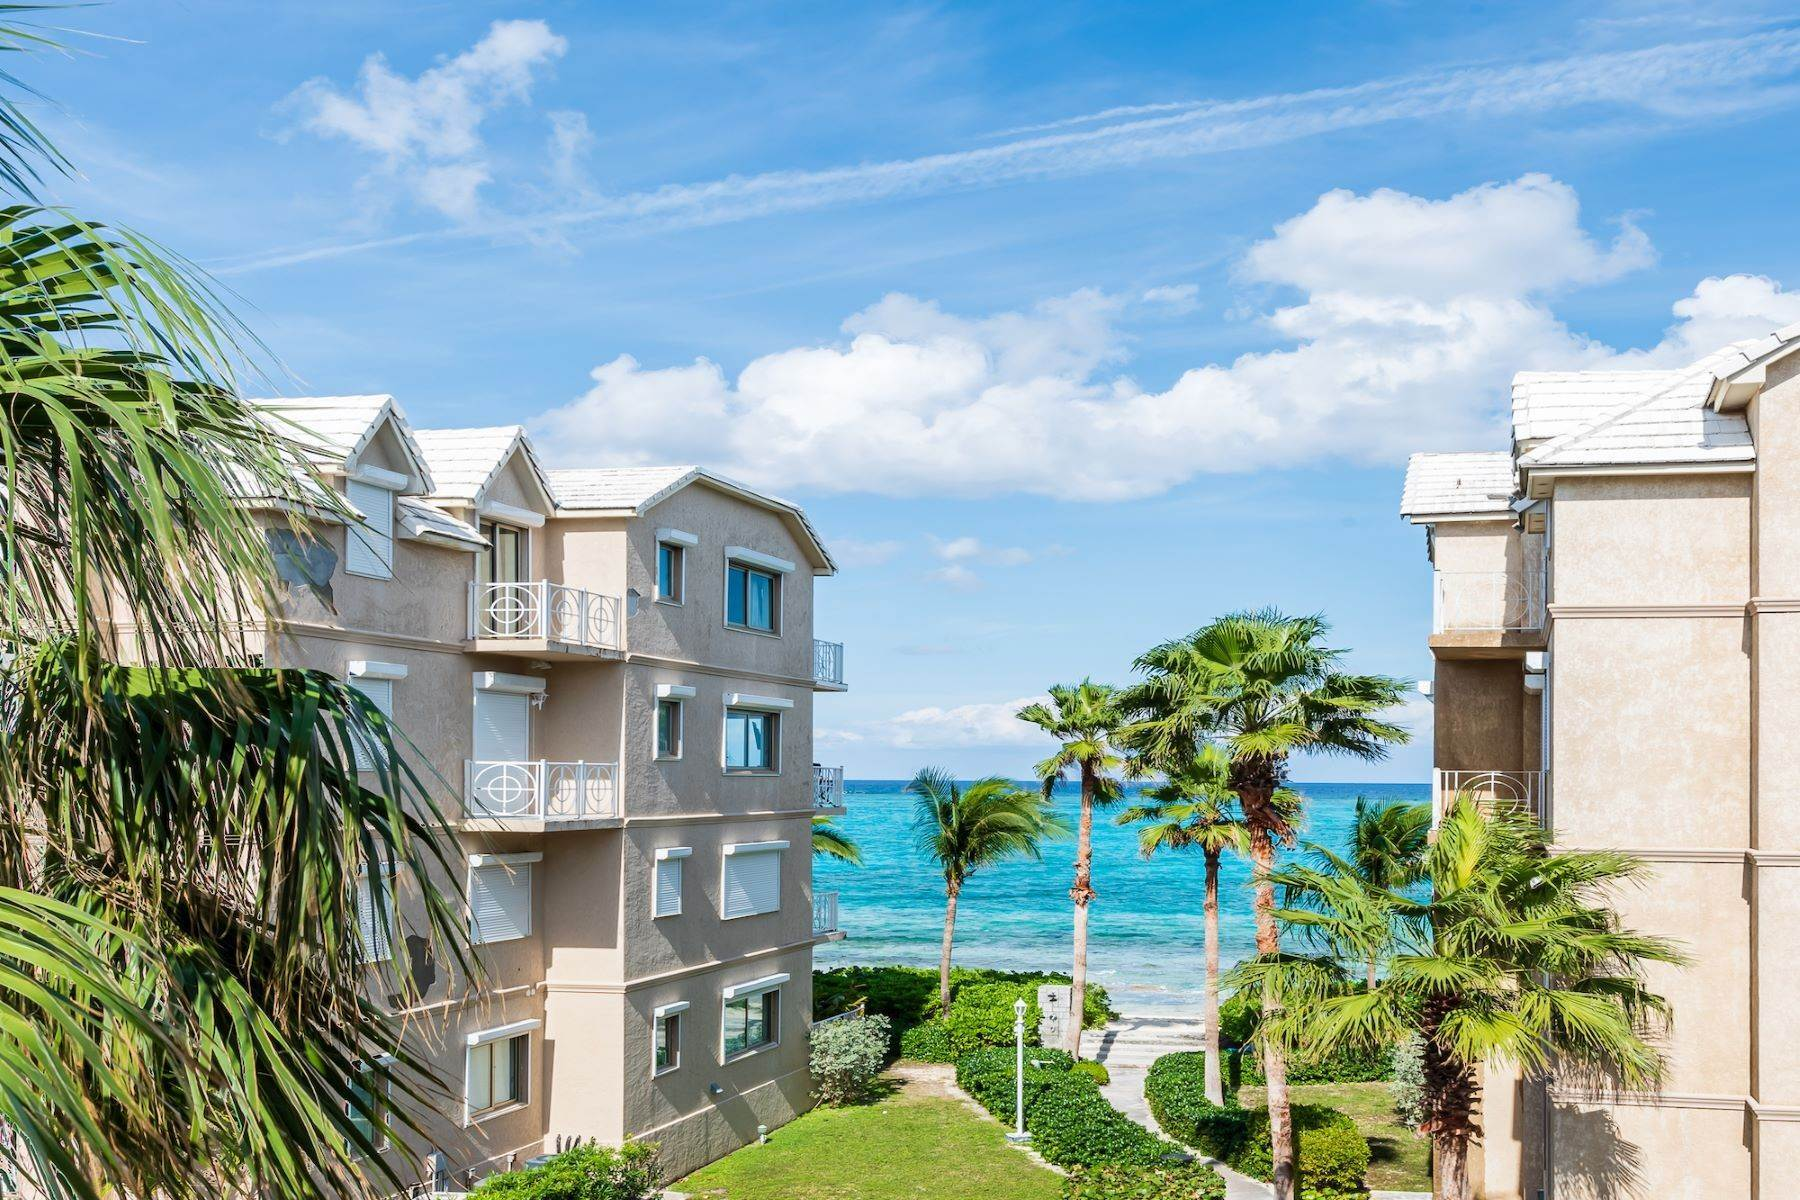 Single Family Homes à Love Beach Walk Unit #5, Building #2 Love Beach Walk, Love Beach, New Providence/Nassau Bahamas